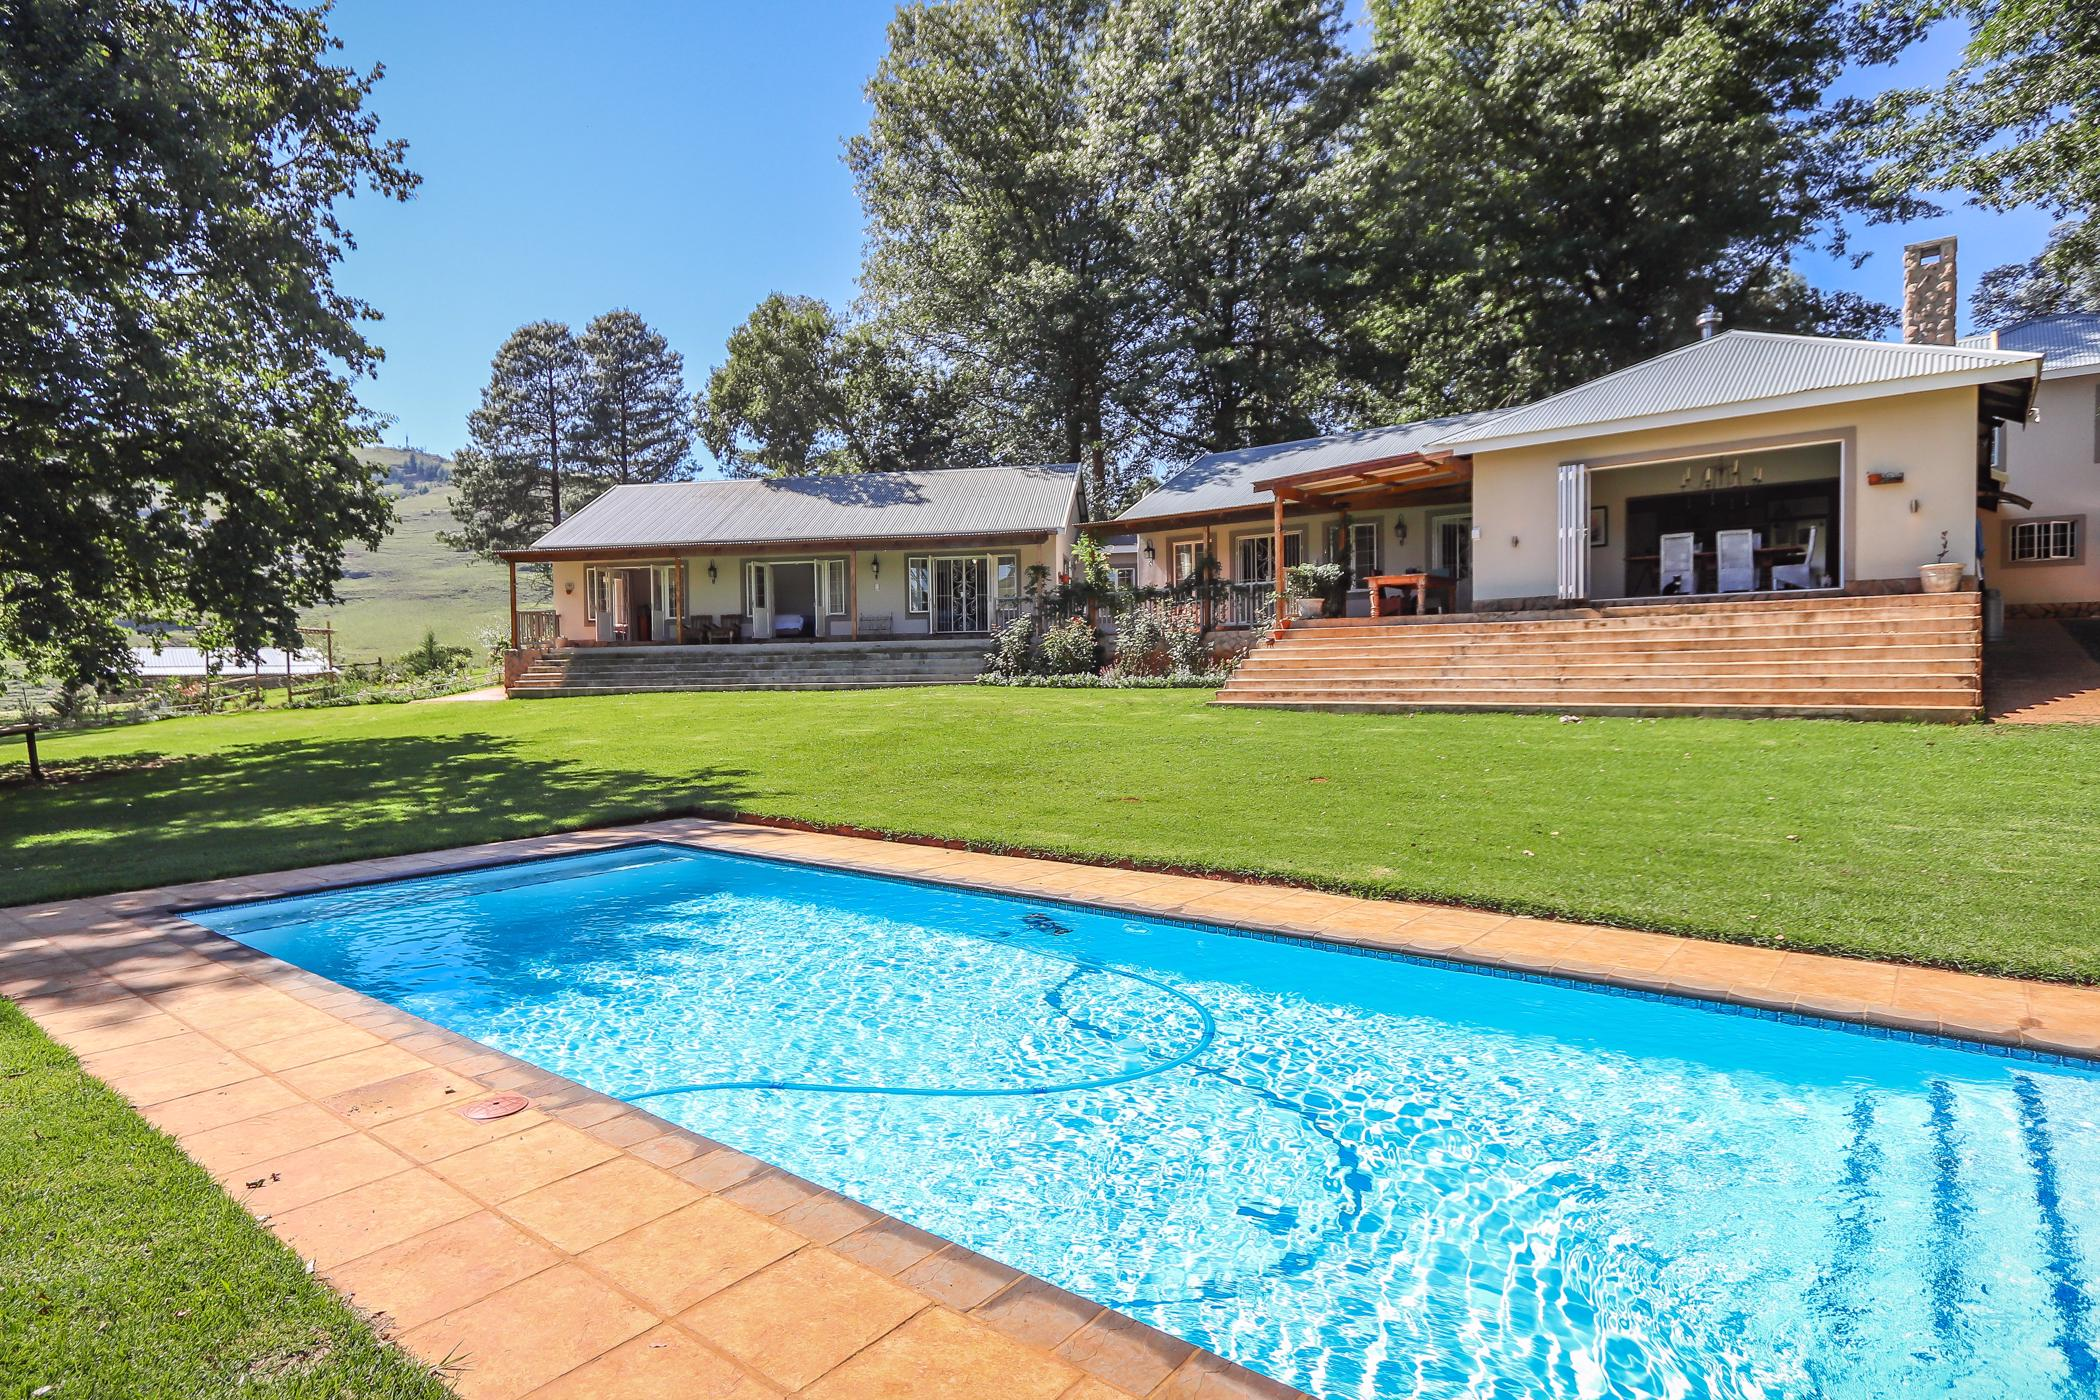 https://listing.pamgolding.co.za/images/properties/201902/198681/H/198681_H_39.jpg